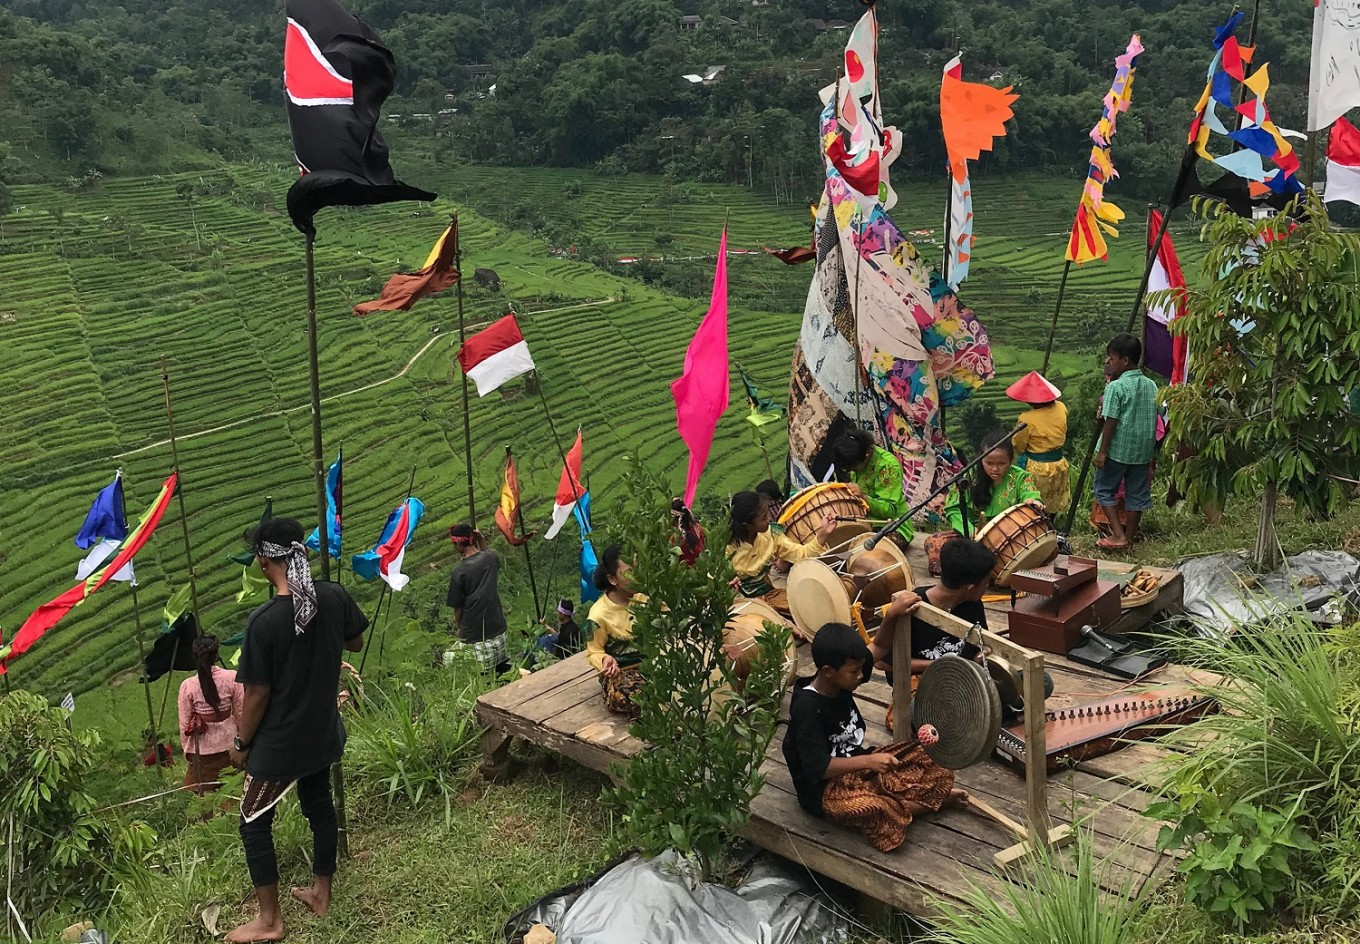 The Mount Lawu Flag Festival featured performances by artists from Yogyakarta and Surakarta accompanied by Lawu Percussion.